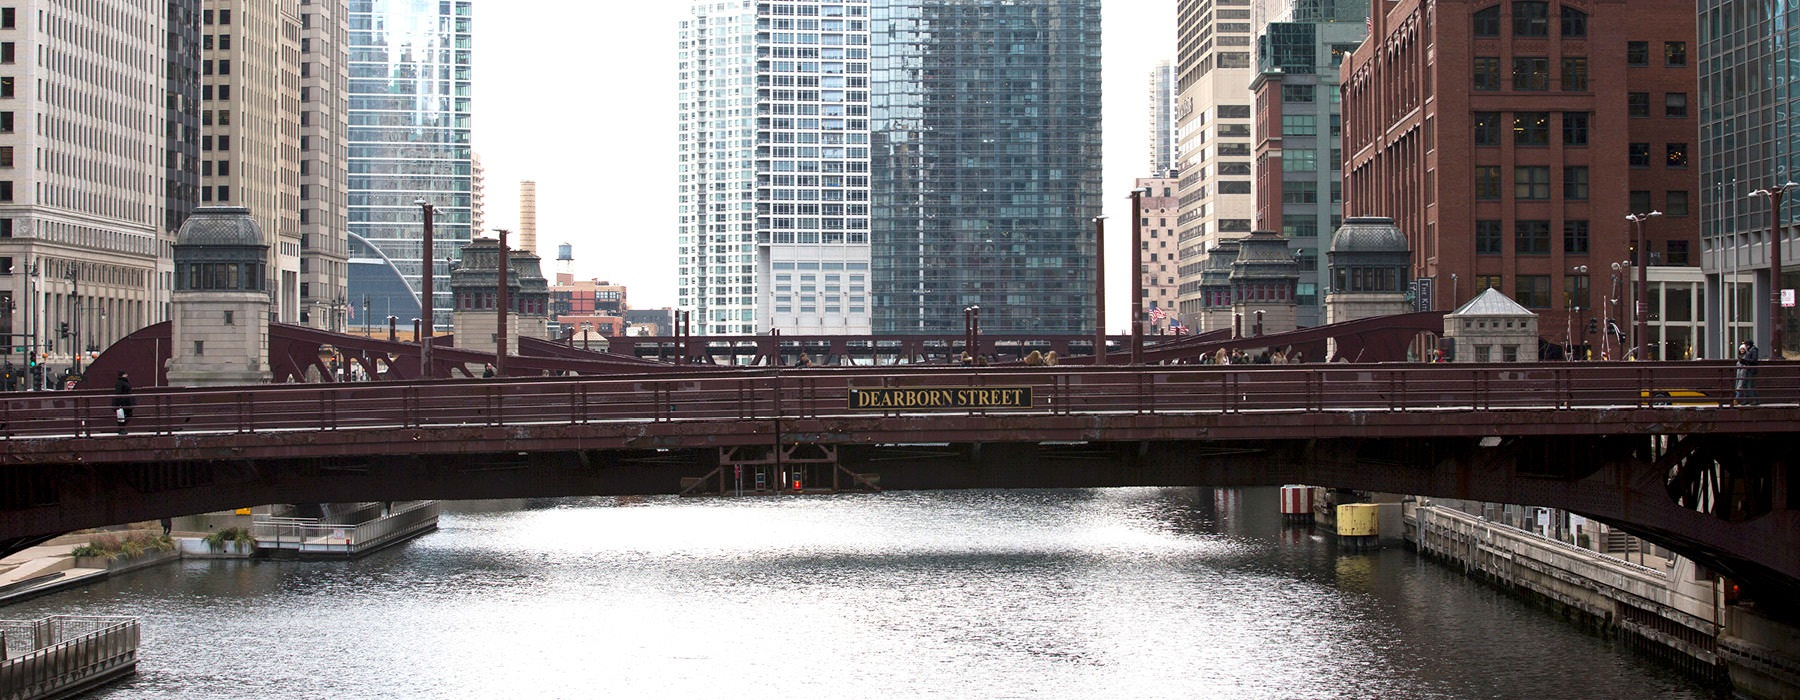 Dearborn Street bridge over the river with skyscrapers in the background